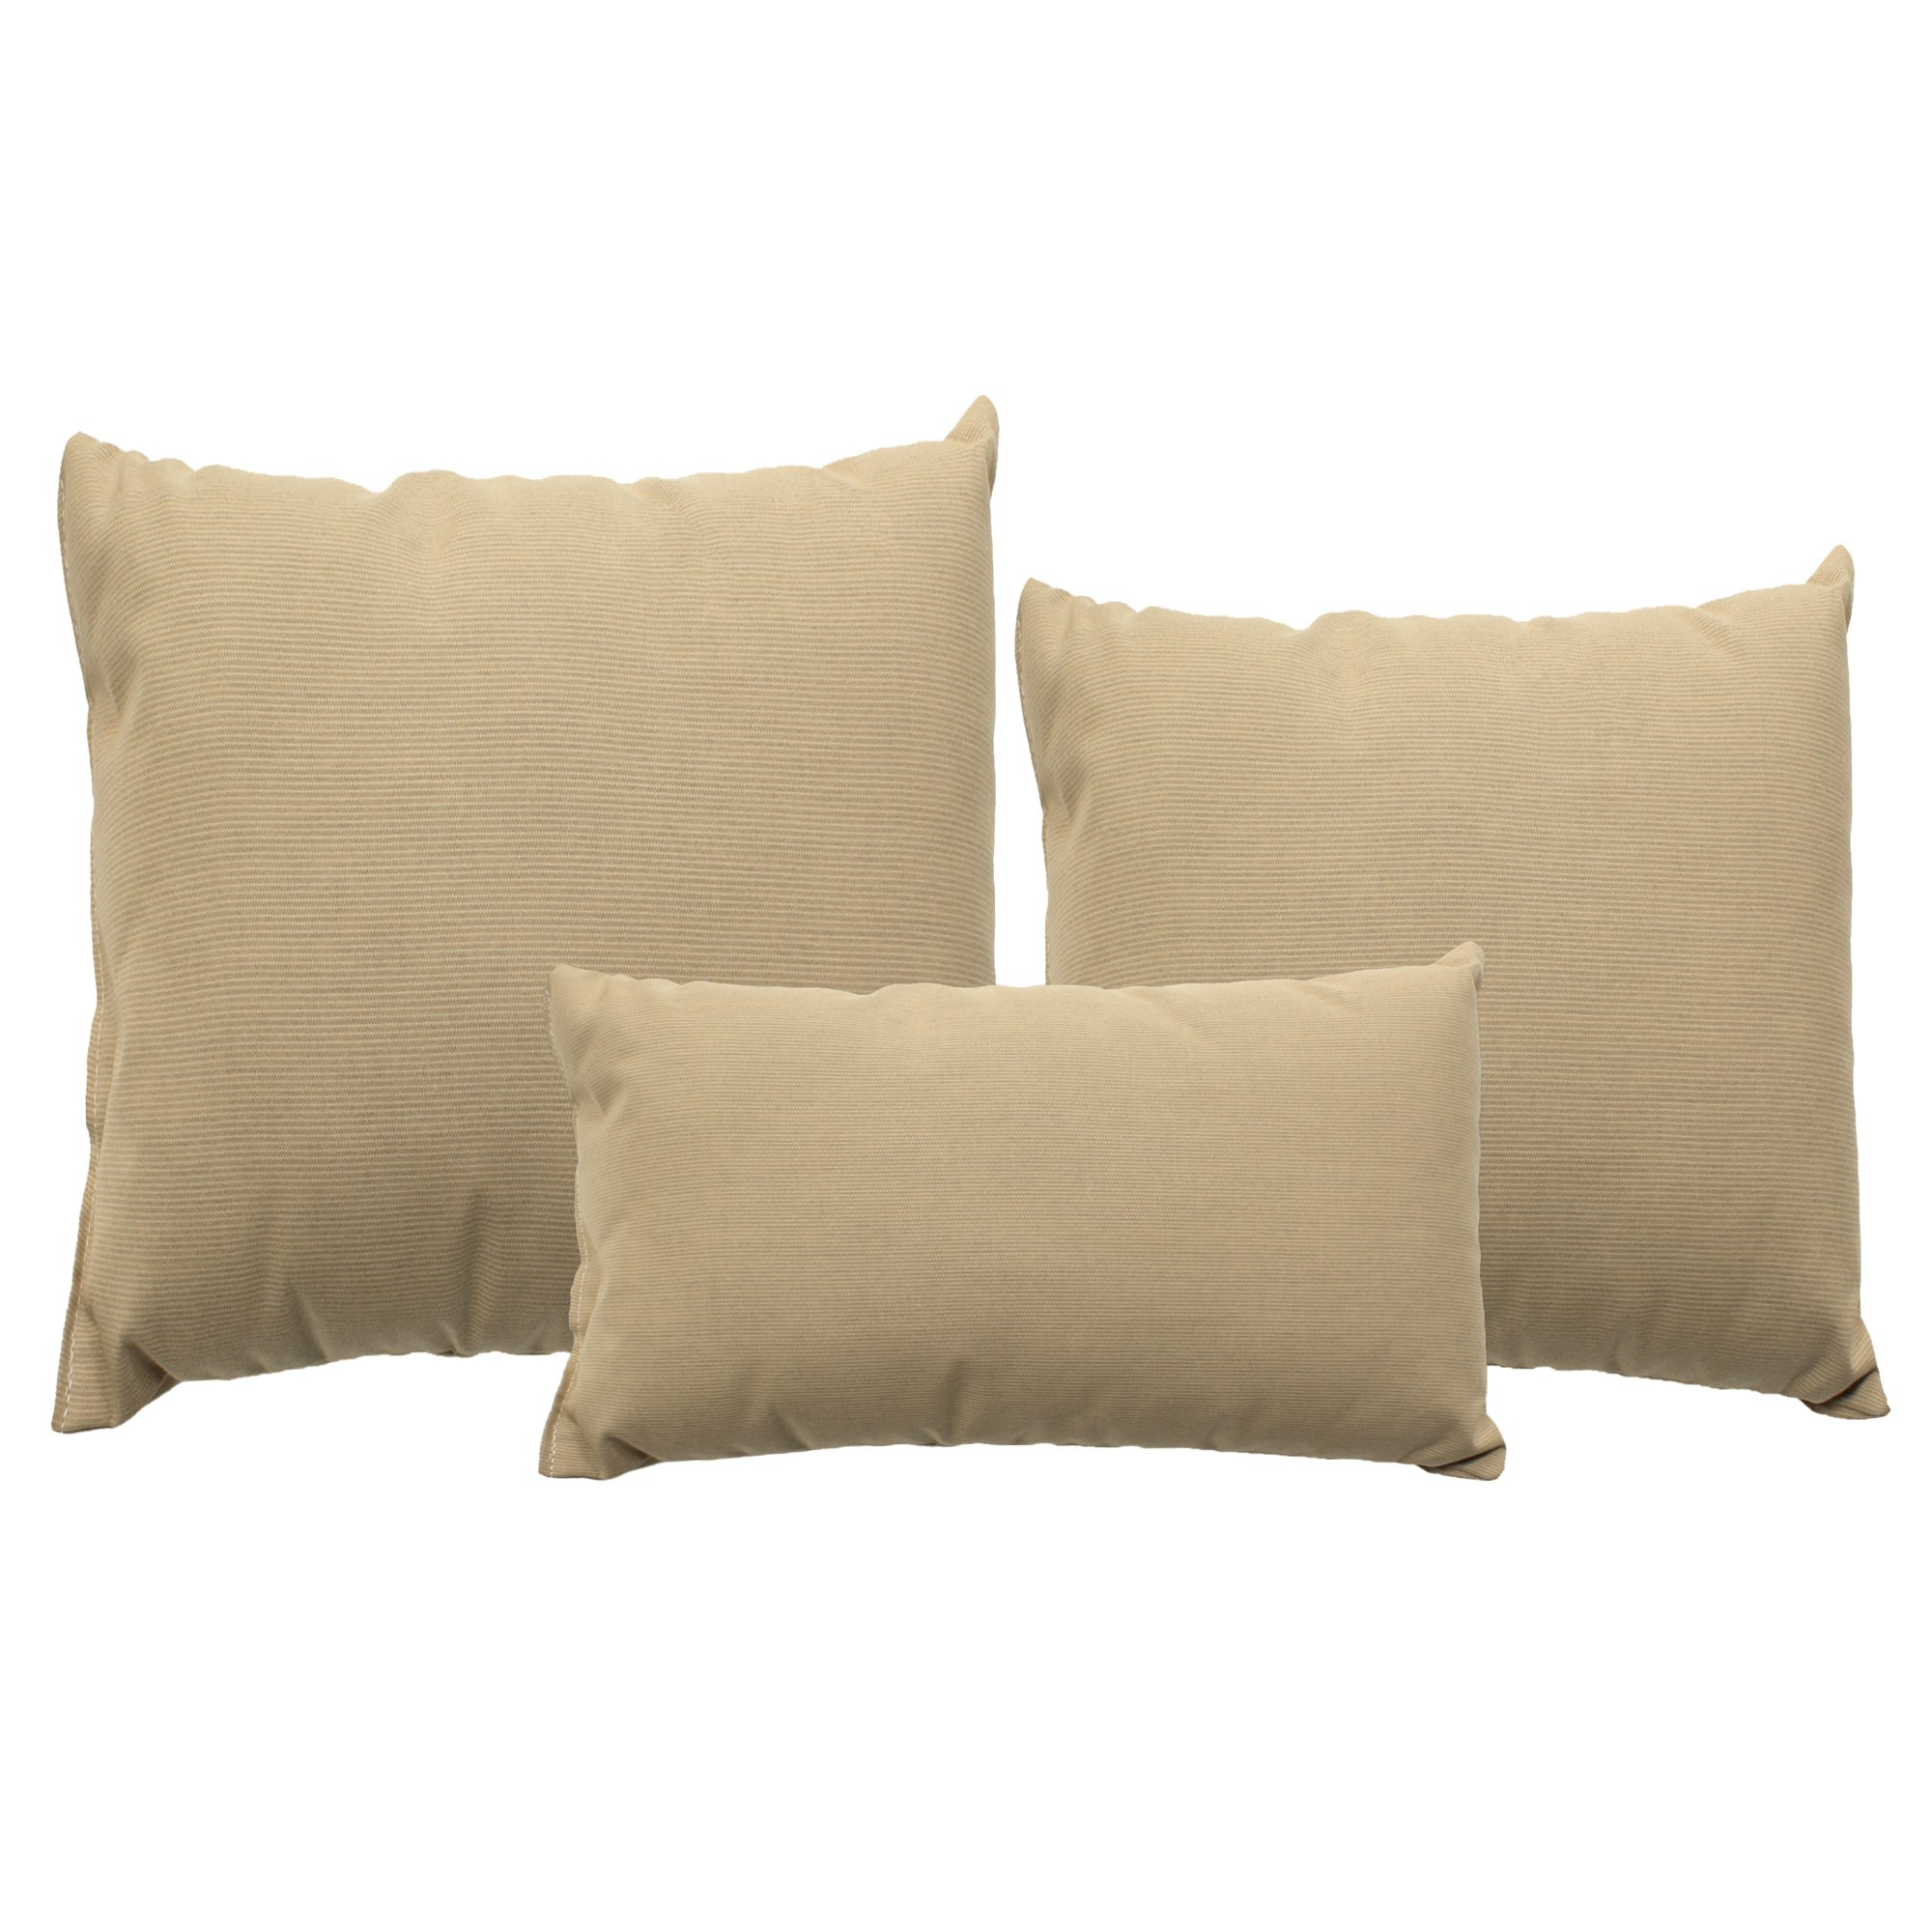 Spectrum Sand Sunbrella Designer Porch Pillow by Pawleys Island